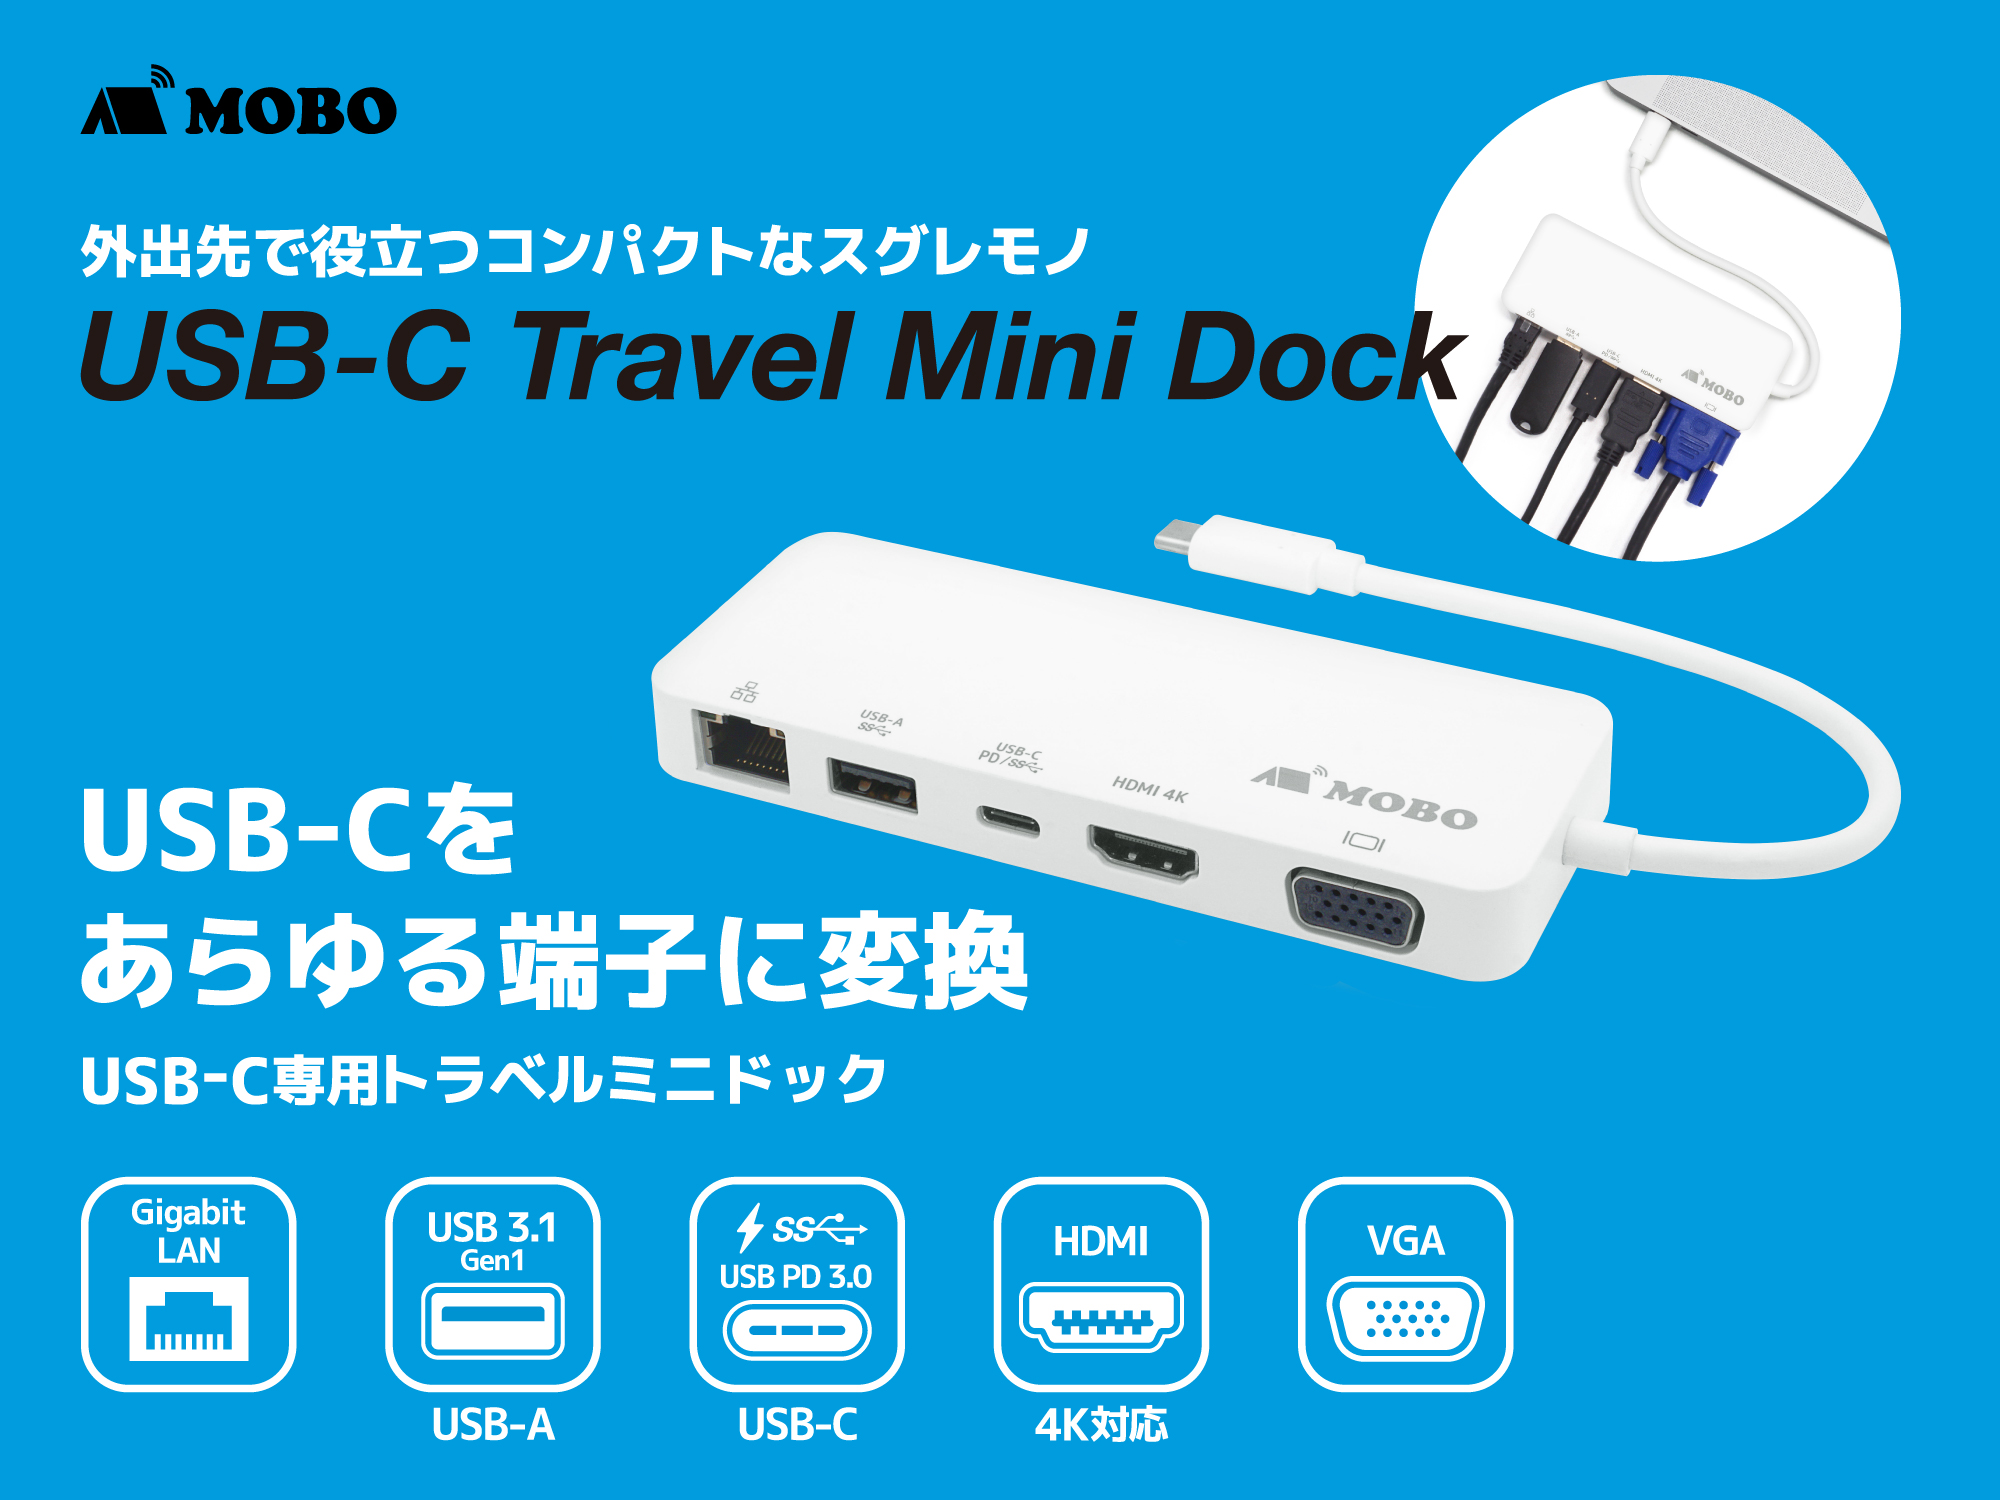 USB-C-Travel-Mini-Dock-web-01